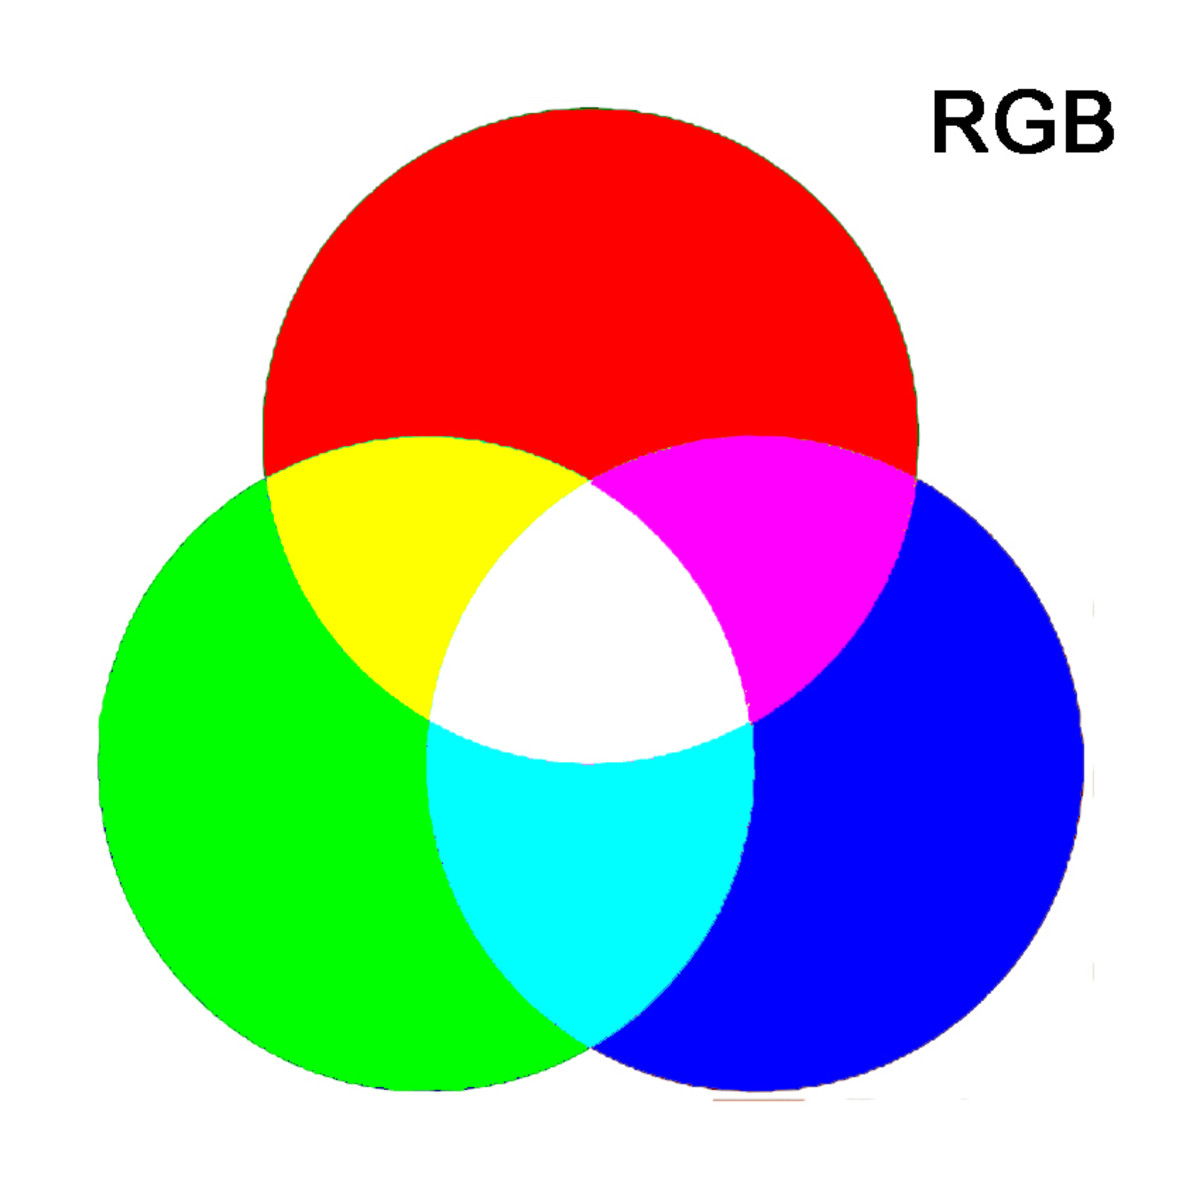 The three primary colours of RGB and how combining two of the colours produces a secondary colour. If all three are combined, then all light is reflected, resulting in a white hue